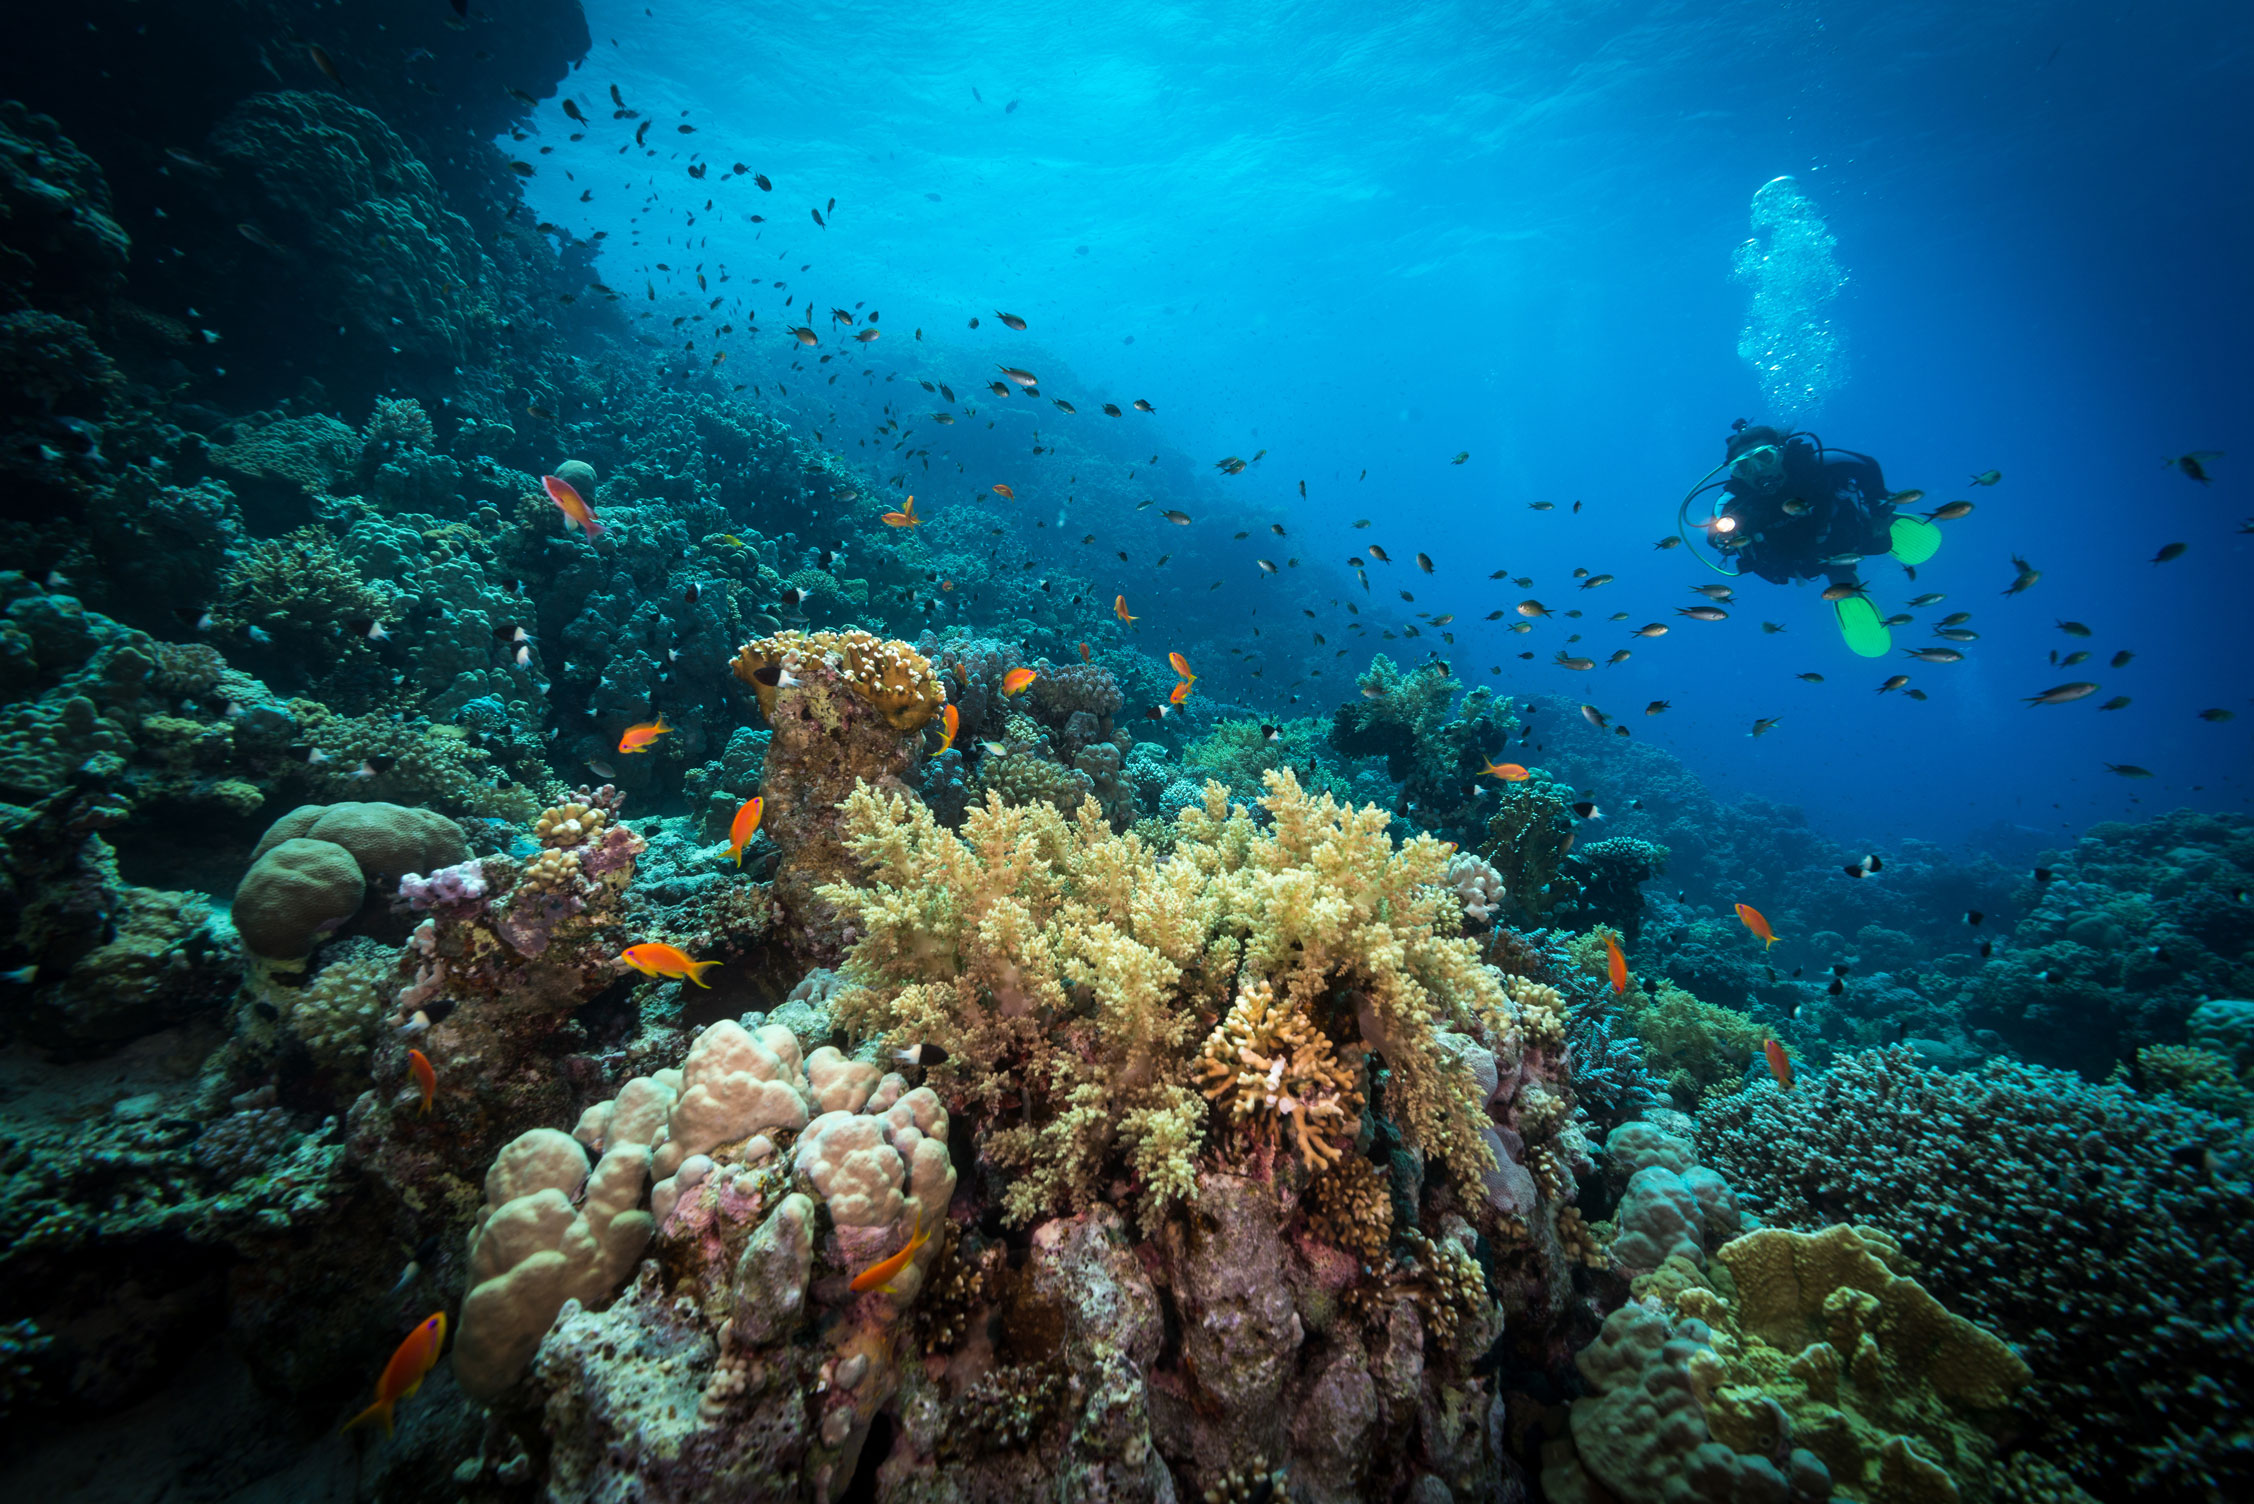 EGY_Red-Sea-UW Reef w Diver-©-AdobeStock_125808020.jpg